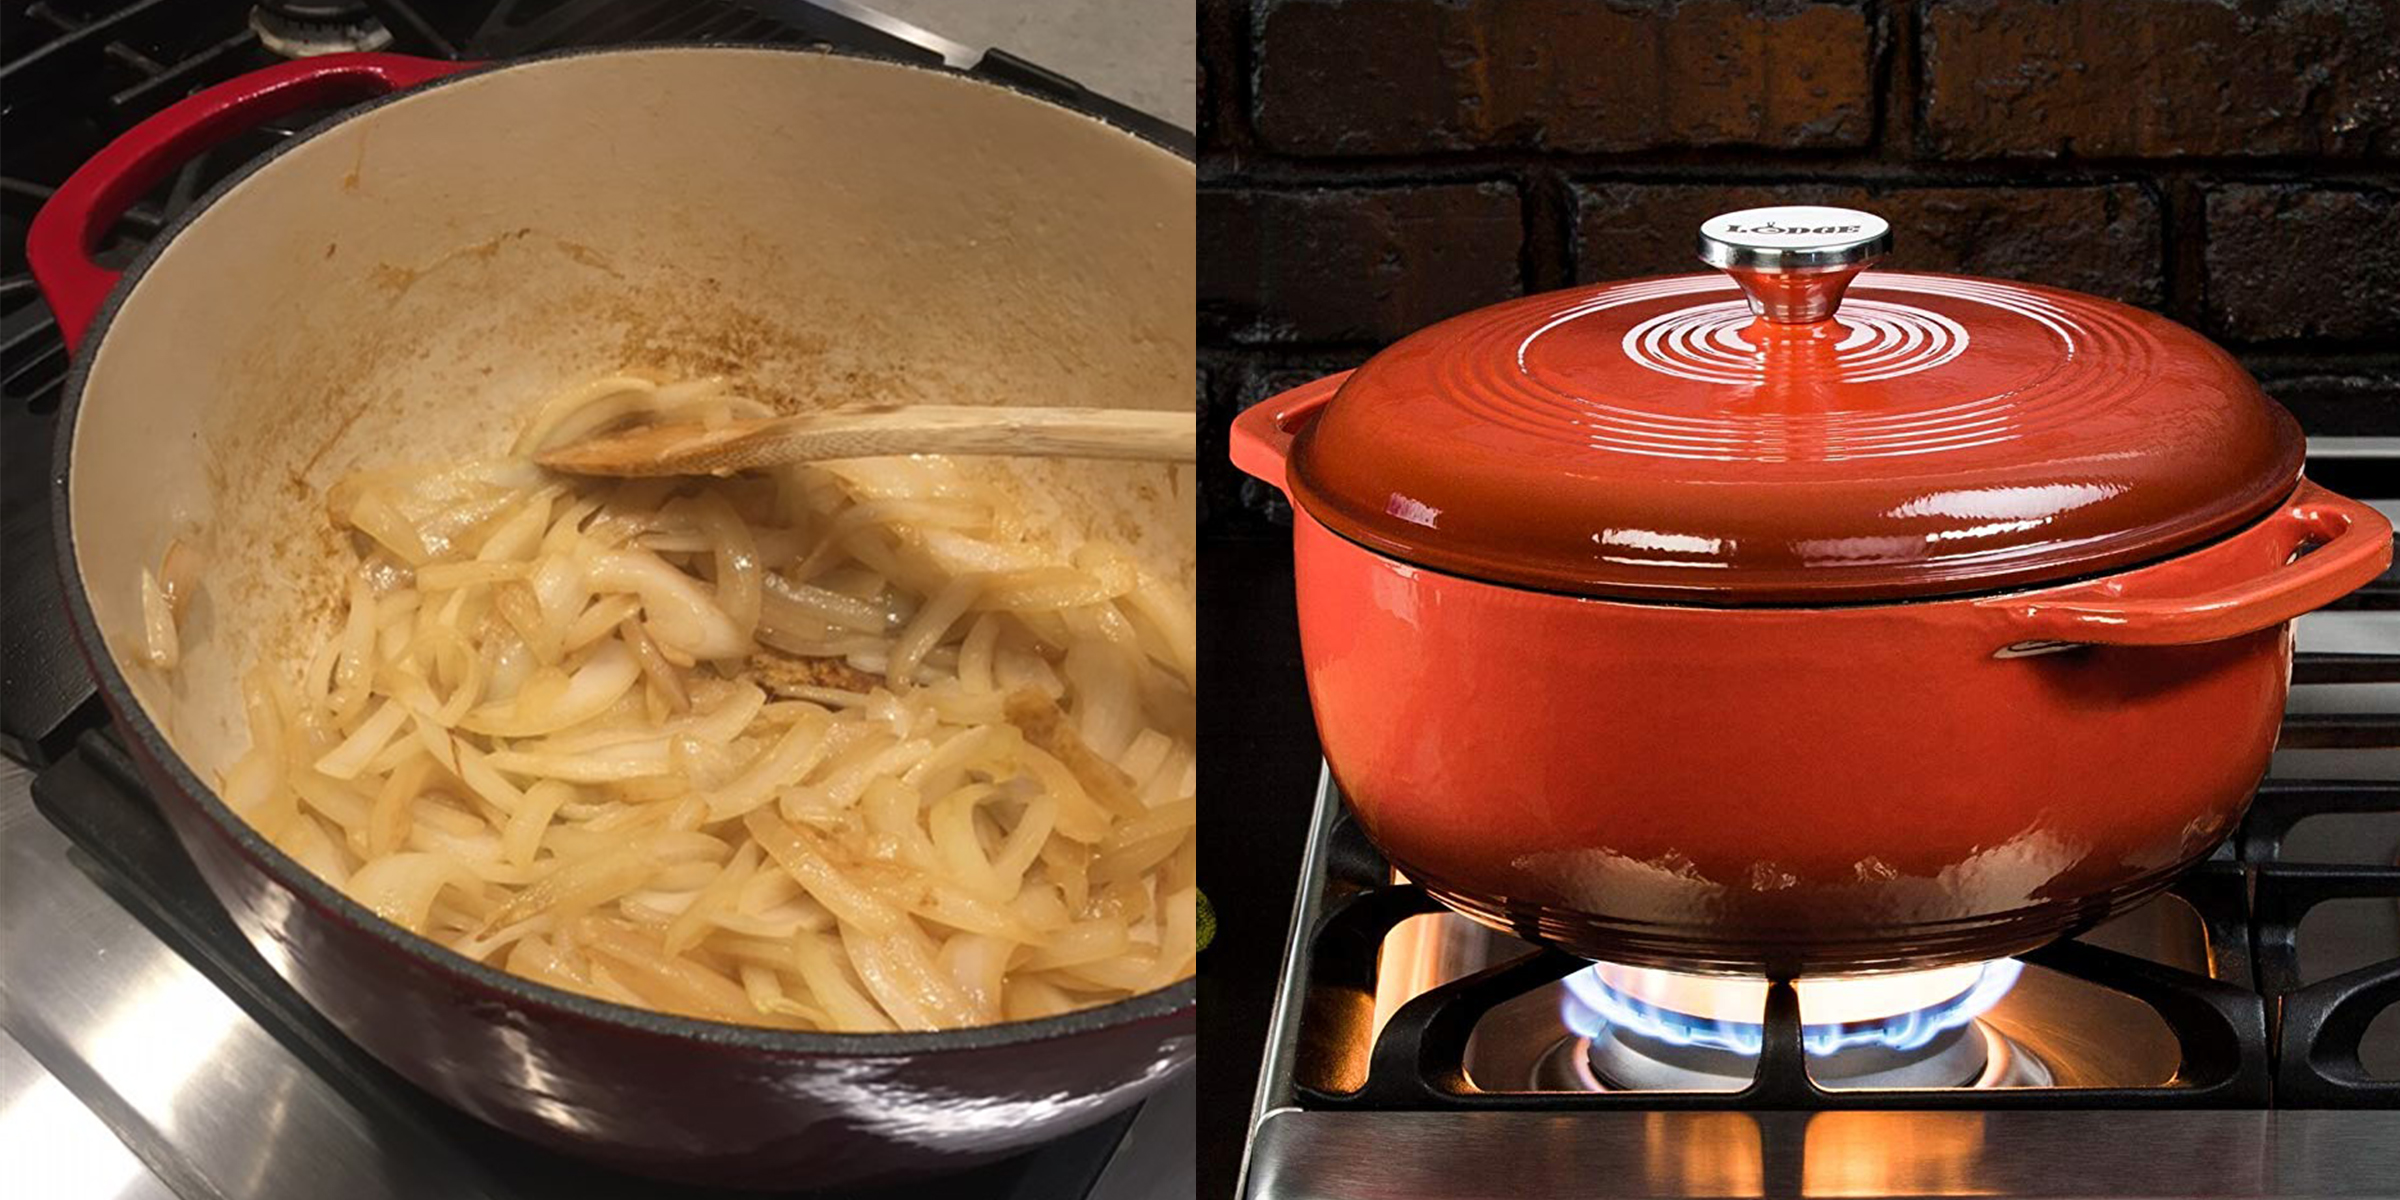 Lodge S Cast Iron Dutch Oven Is Cheap And As Good As Pricey Models